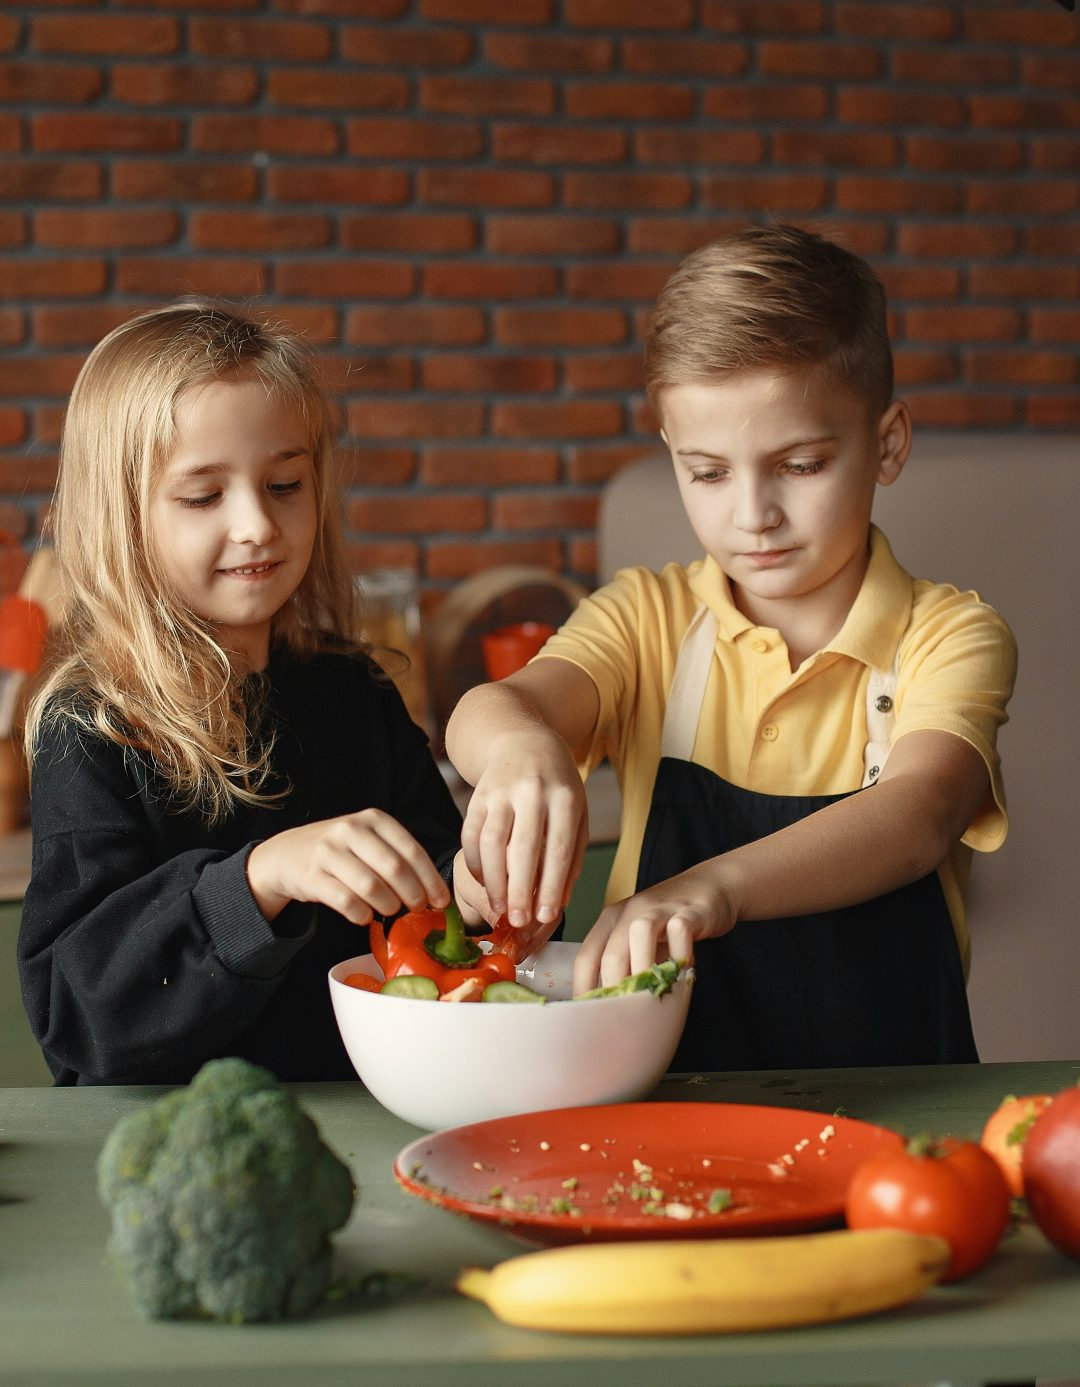 Does your child enjoy cooking?